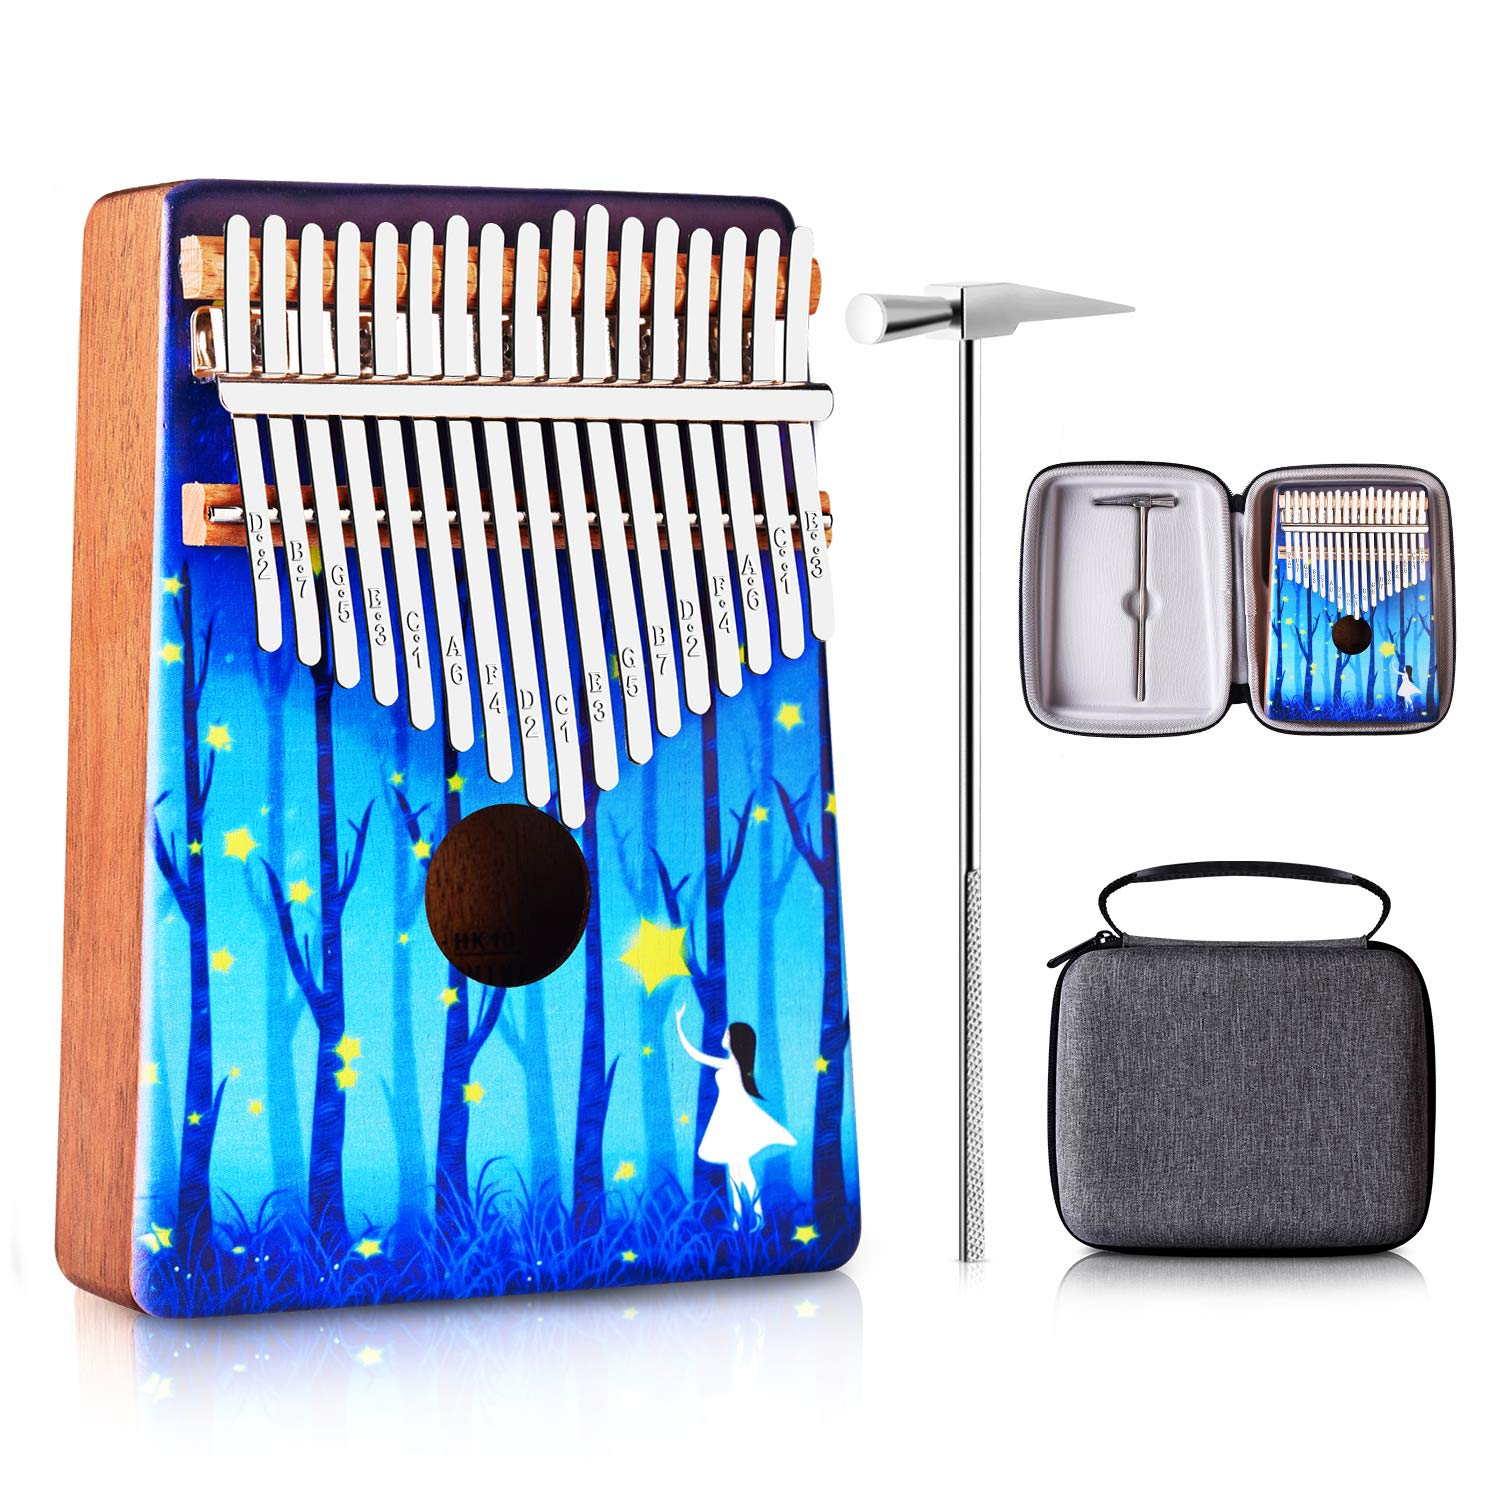 ATUP Kalimba 17 Keys Thumb Piano Solid Finger Piano Mahogany Body with Tuning Hammer Study Instruction Carry Case - Best Birthday Christmas Gift for Music Fans Kids Adults (Blue - Forest)